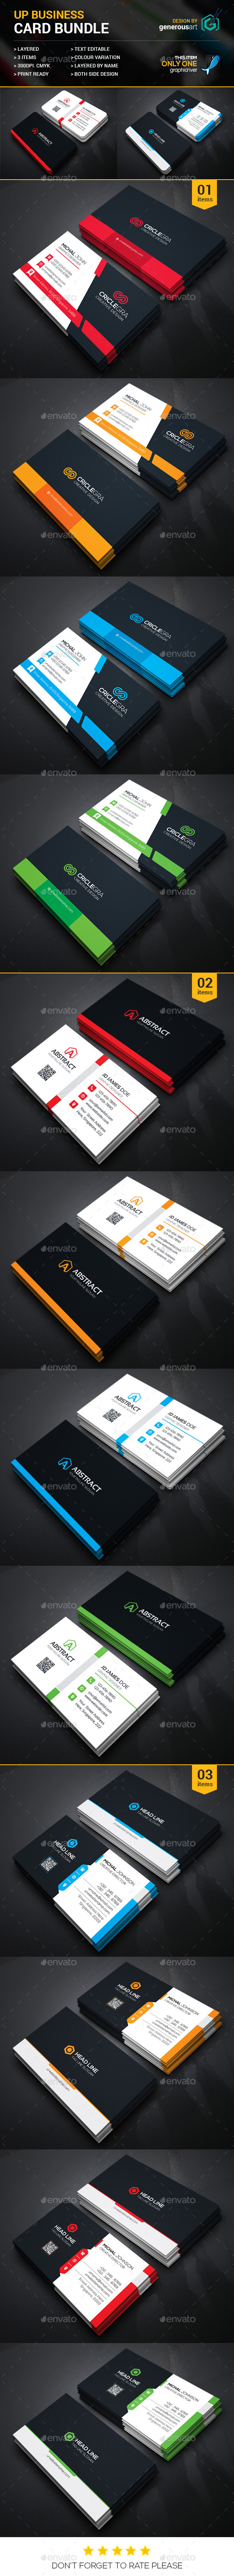 Business Card Bundle 3 in 1 10